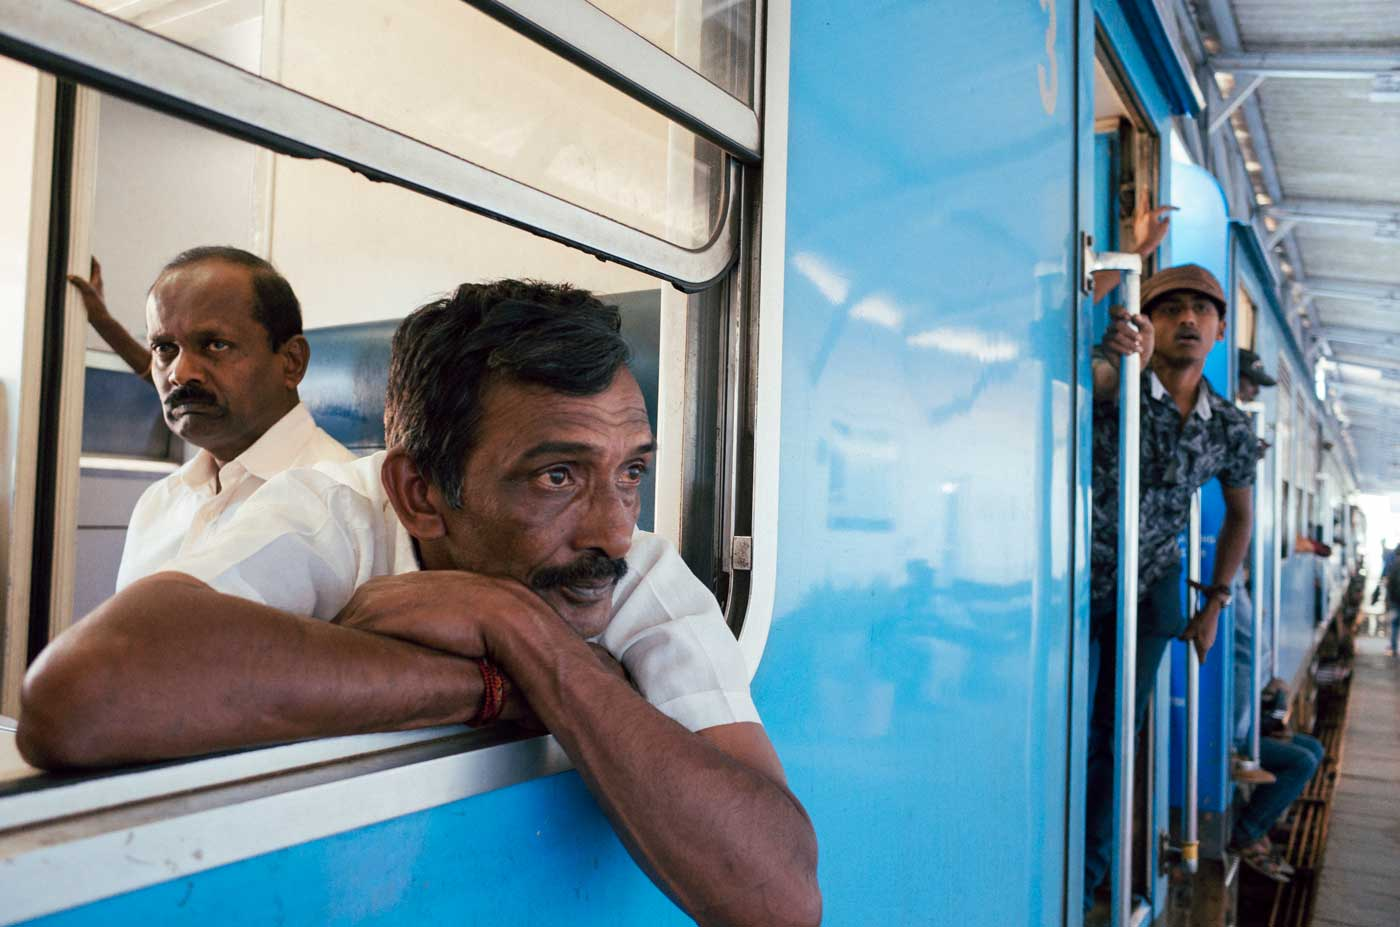 ricoh-gr-II-III-review-camera-point-and-shoot-28mm-colombo-portrait-local-taking-train-sri-lanka-travel-backpacking